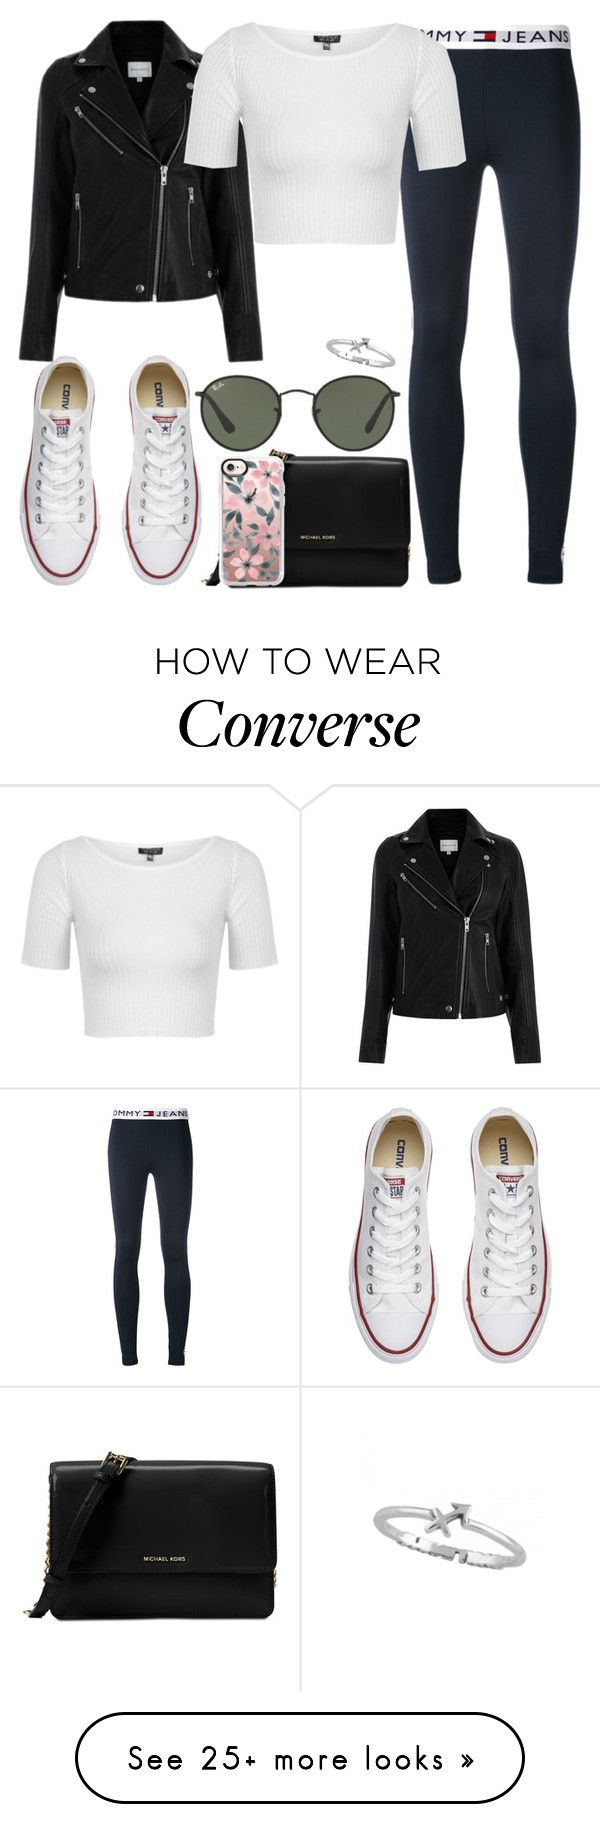 """Untitled #303"" by findthefinerthings on Polyvore featuring Tommy Hilfiger, Michael Kors, Casetify, Converse, Topshop and Ray-Ban"